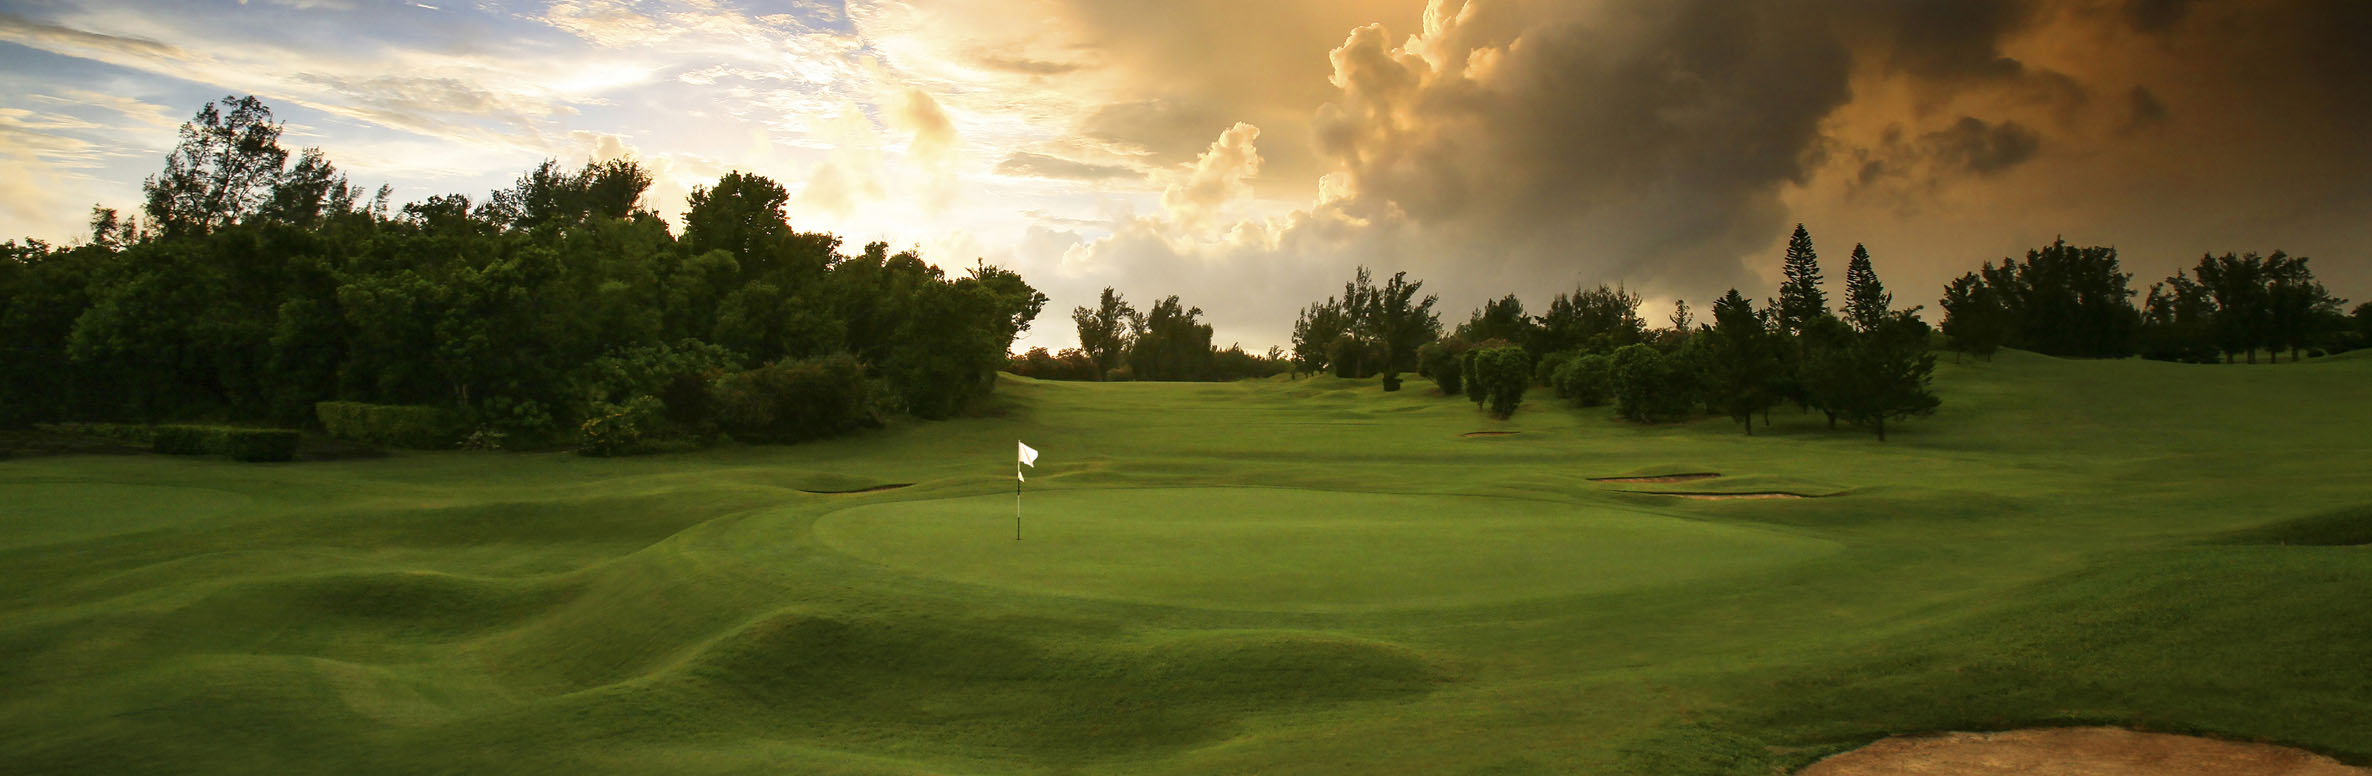 Golf Course Image - Riddell's Bay Golf Course No. 18